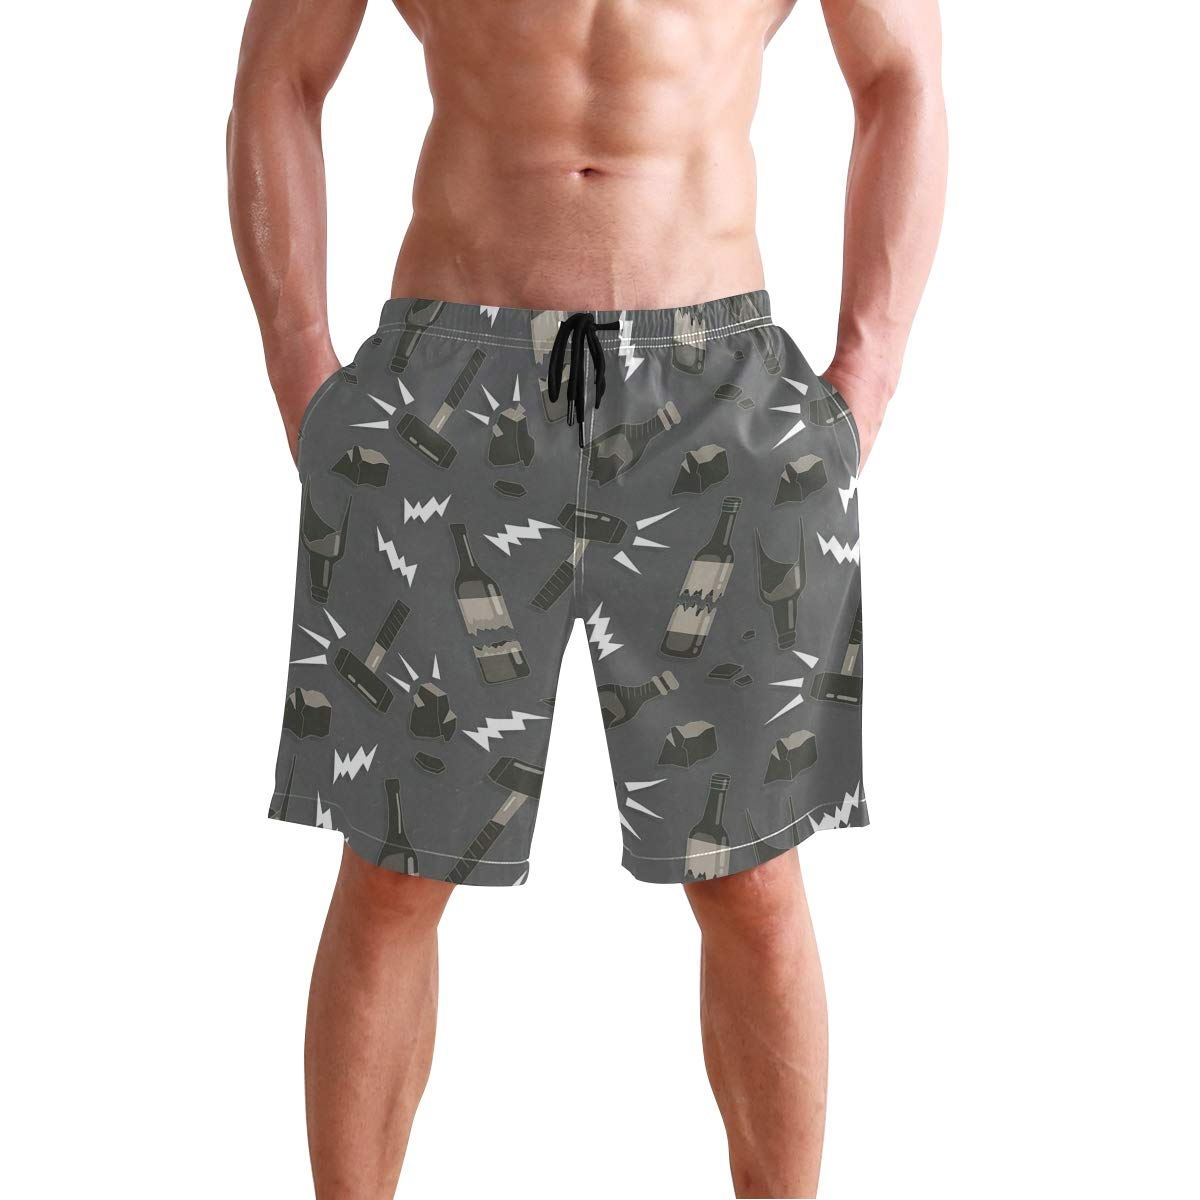 Casual Mens Swim Trunks Breathable Quick Dry Printed Beach Shorts Broken Bottle Summer Boardshorts with Mesh Lining